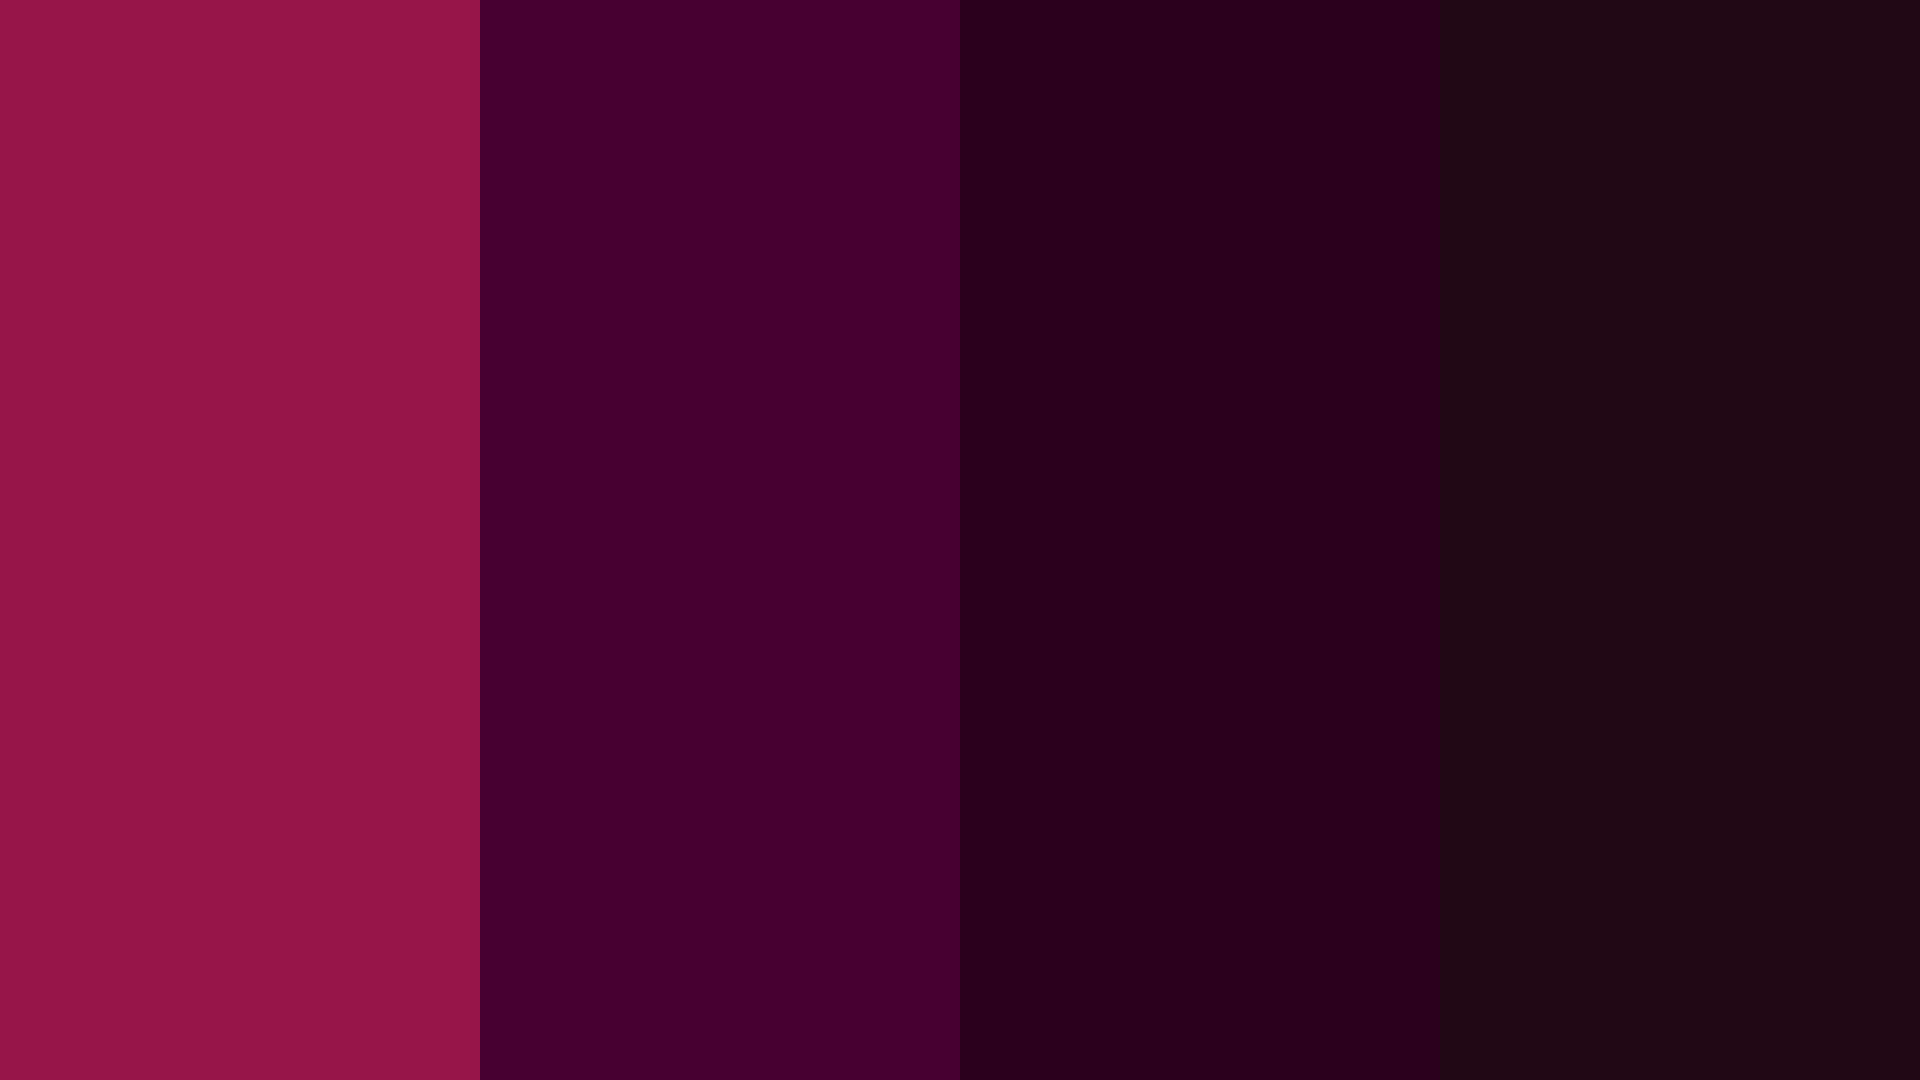 Dark Dance Color Palette